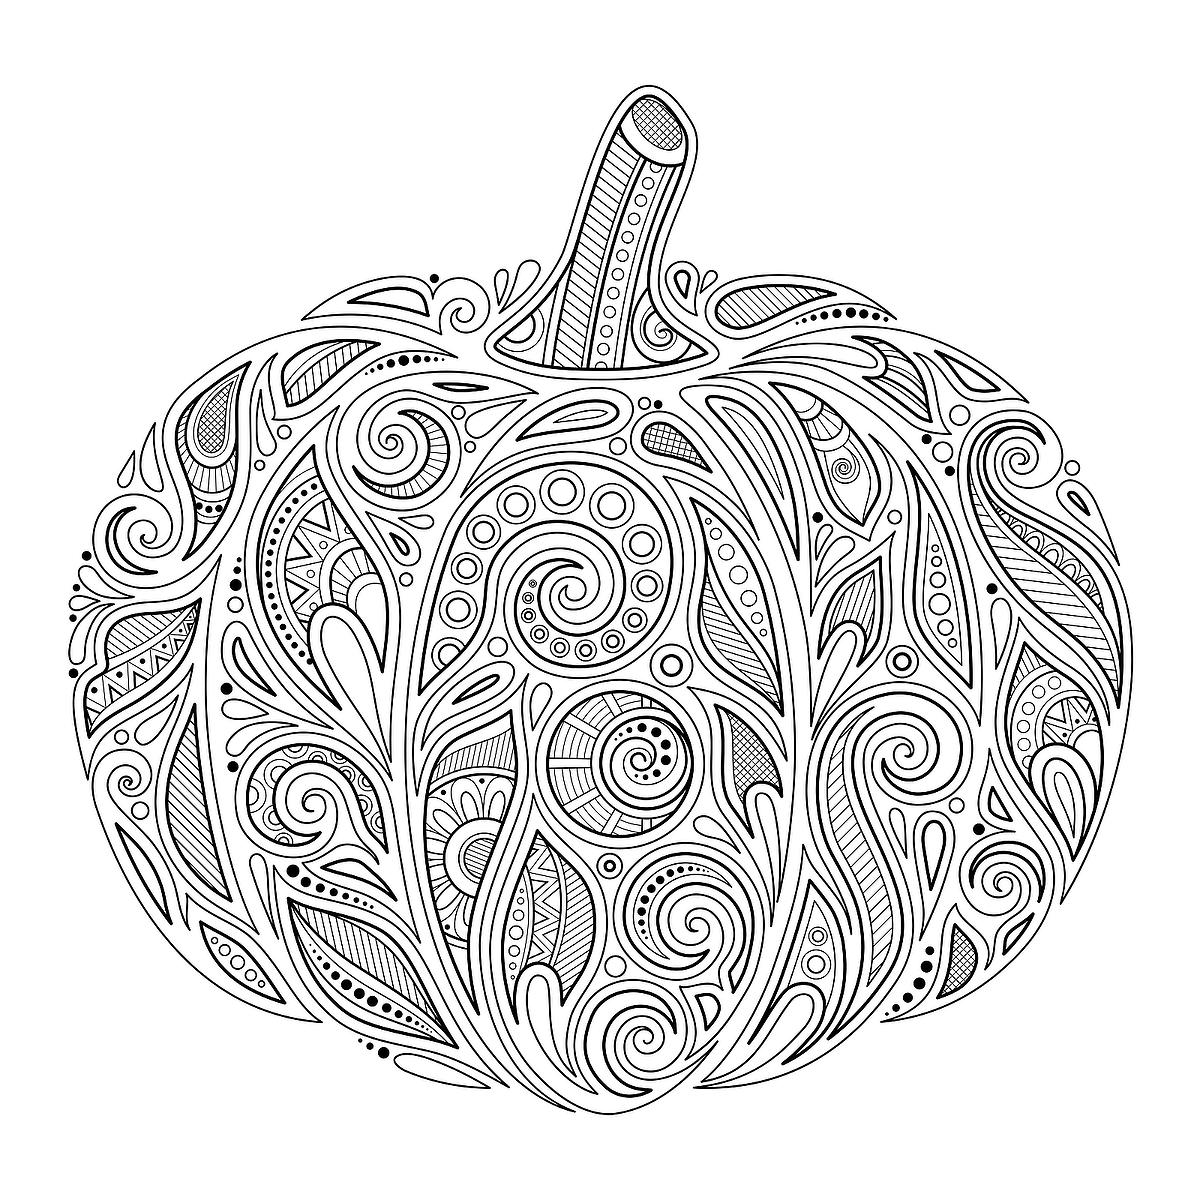 Pumpkin Coloring Pages 8 Free Fun Printable Coloring Pages Of Pumpkins That Celebrate Fall Printables 30seconds Mom